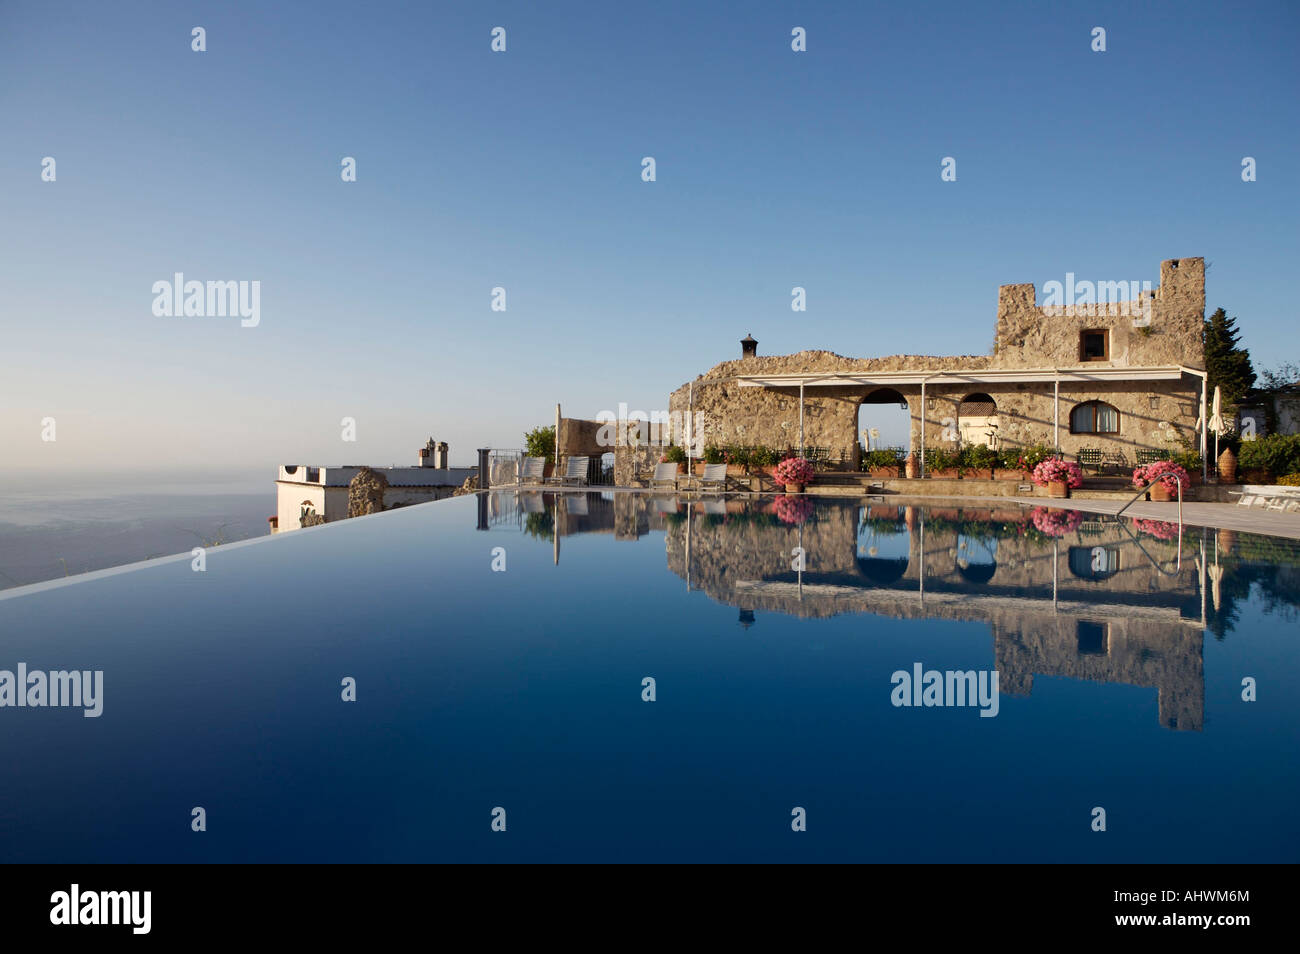 The infinity pool of the Hotel Caruso in Ravello, Italy, taken in the early morning sunrise - Stock Image